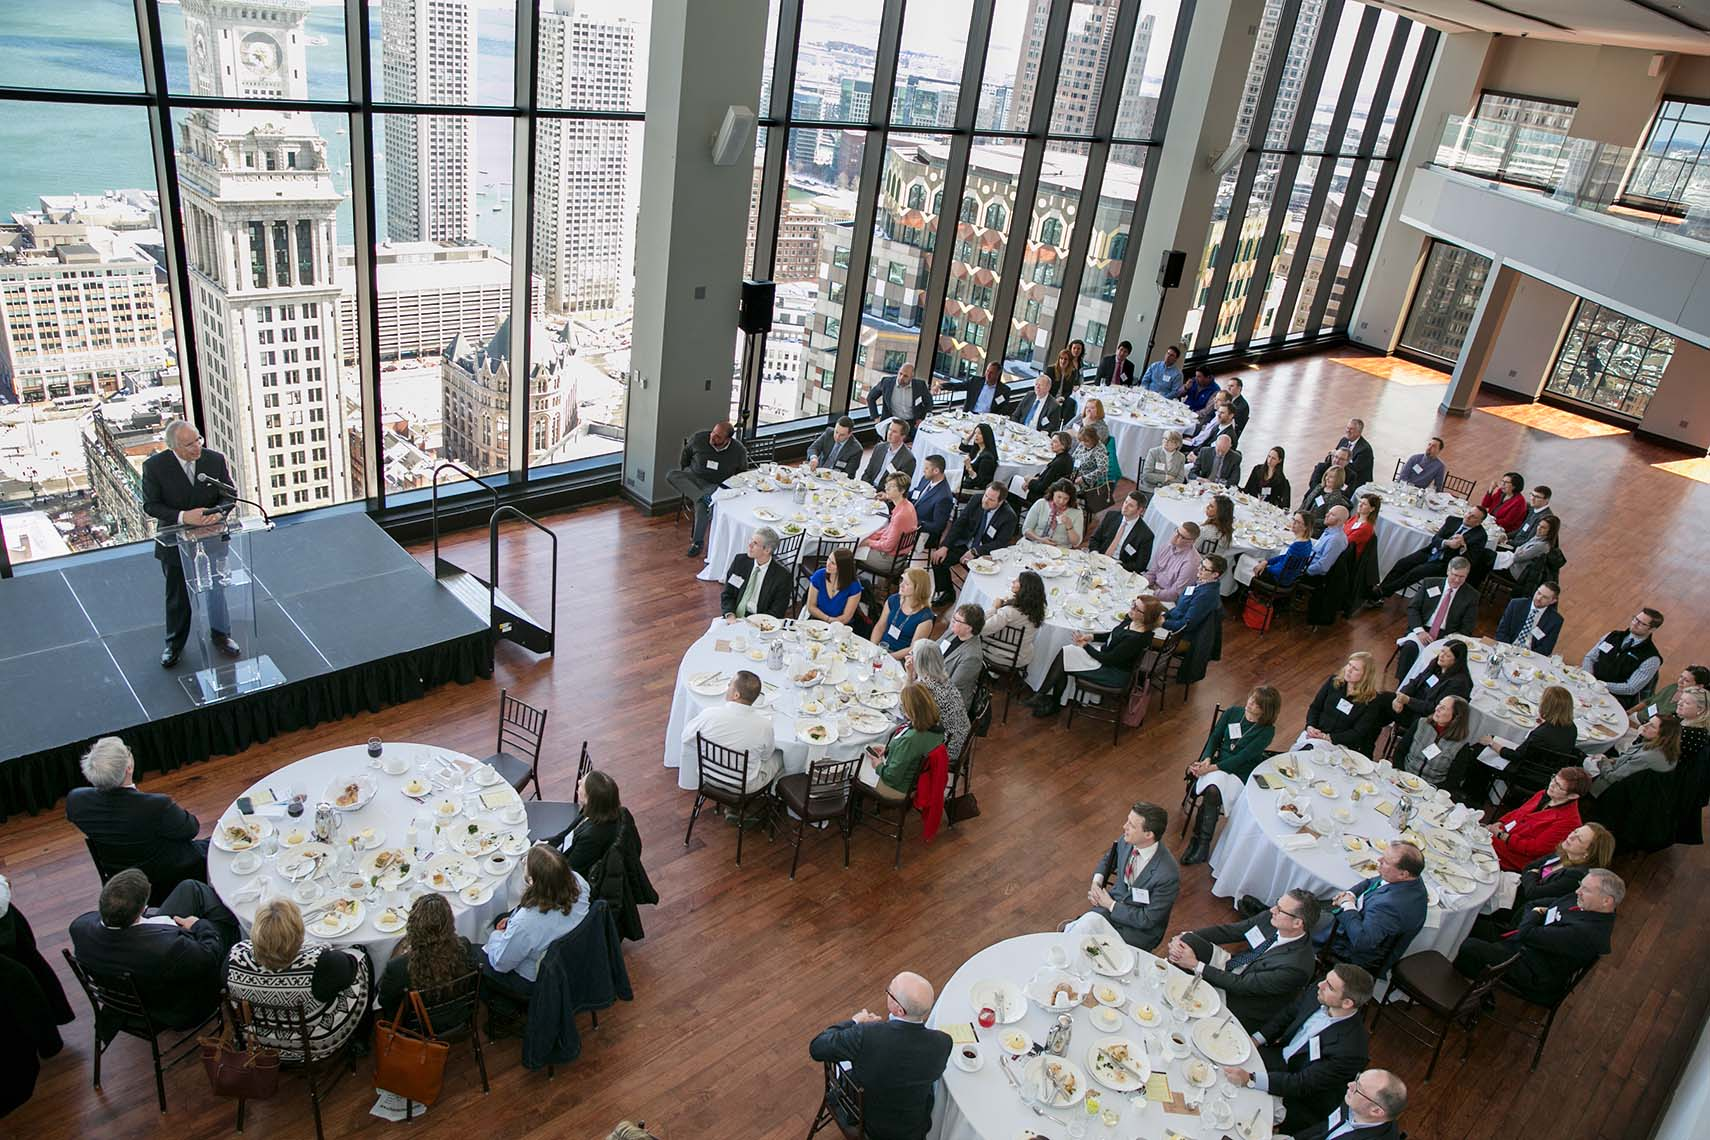 A speaker event at the State Room: A Longwood Venue in Boston